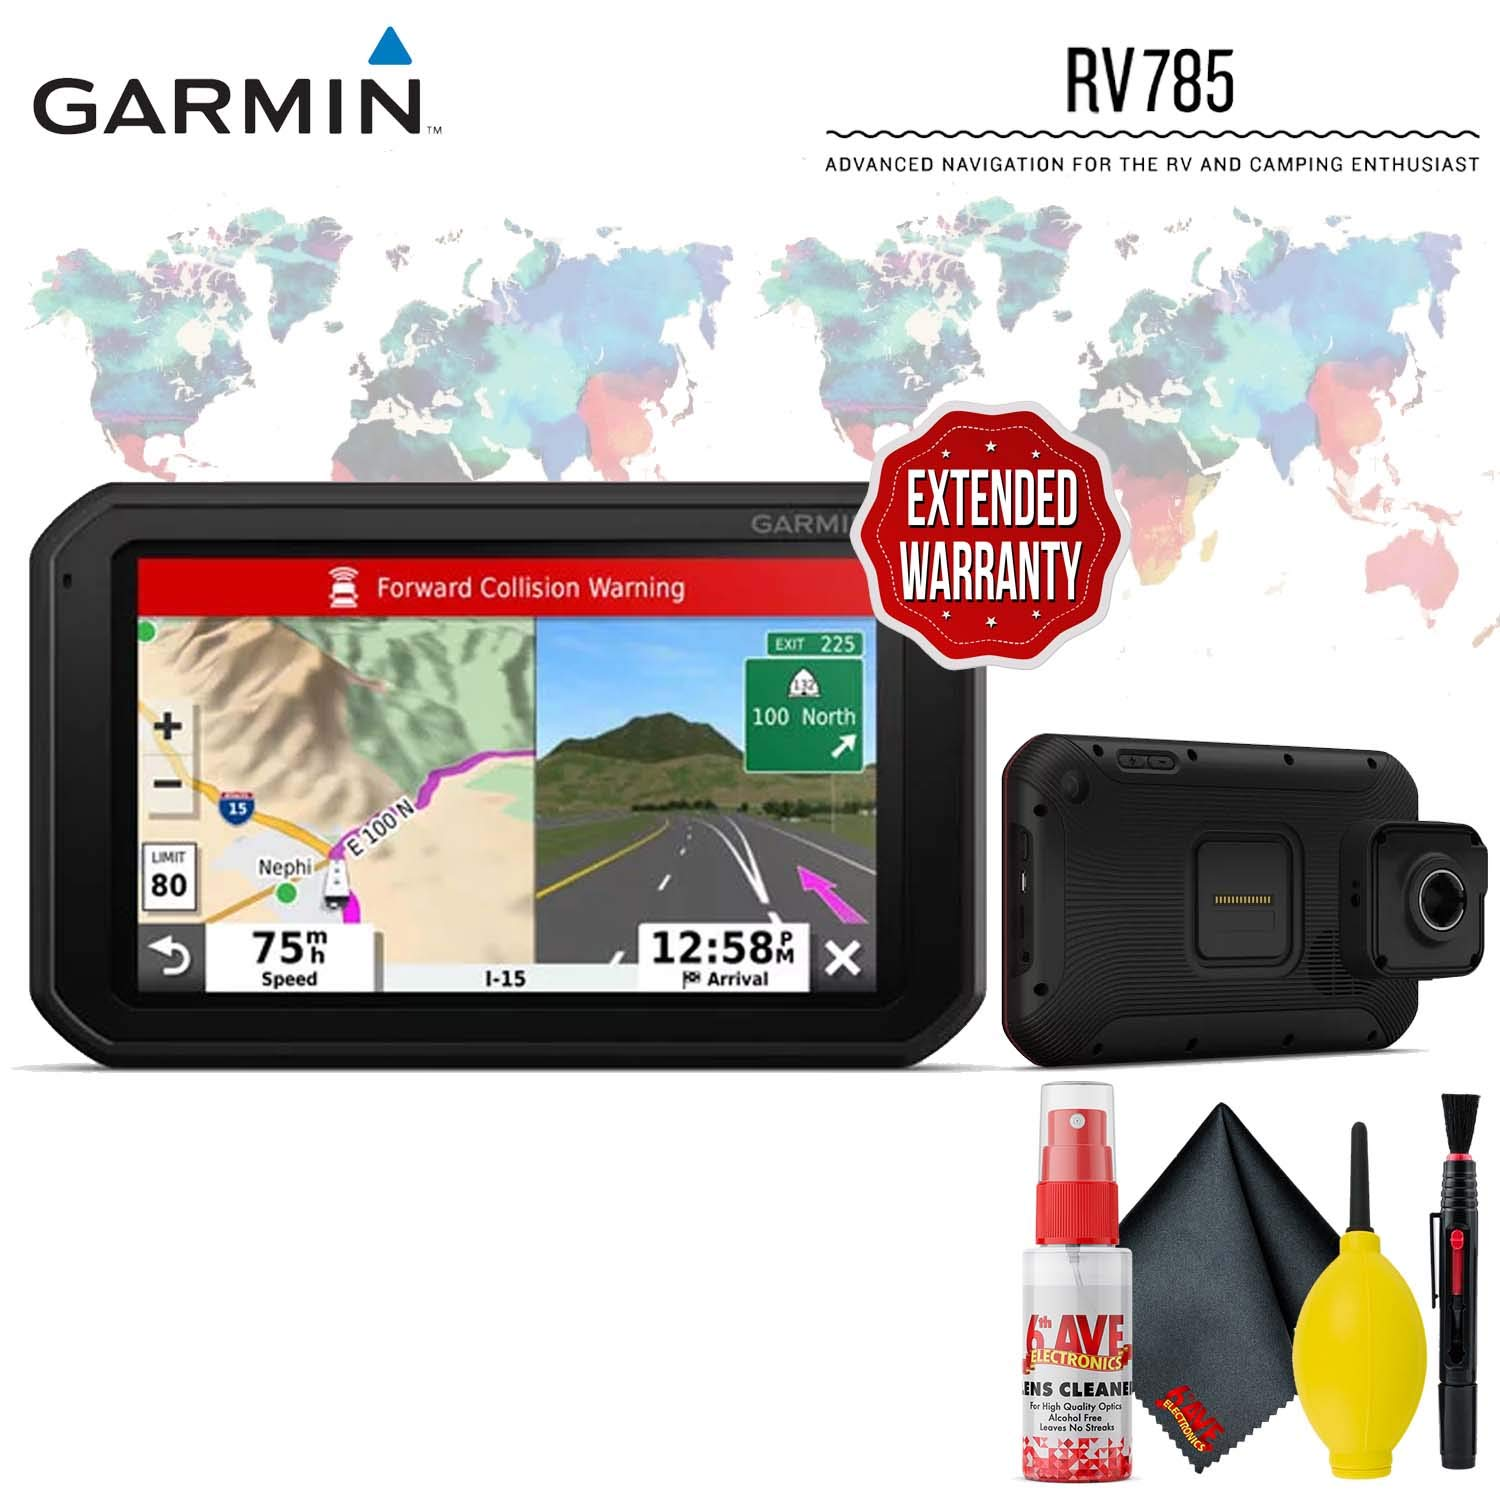 Garmin RV 785 & Traffic, Advanced GPS Navigator for RVs with Built-in Dash Cam, 7'' Touch Display and Voice-Activated Navigation Protective Accessory Kit by Garmin